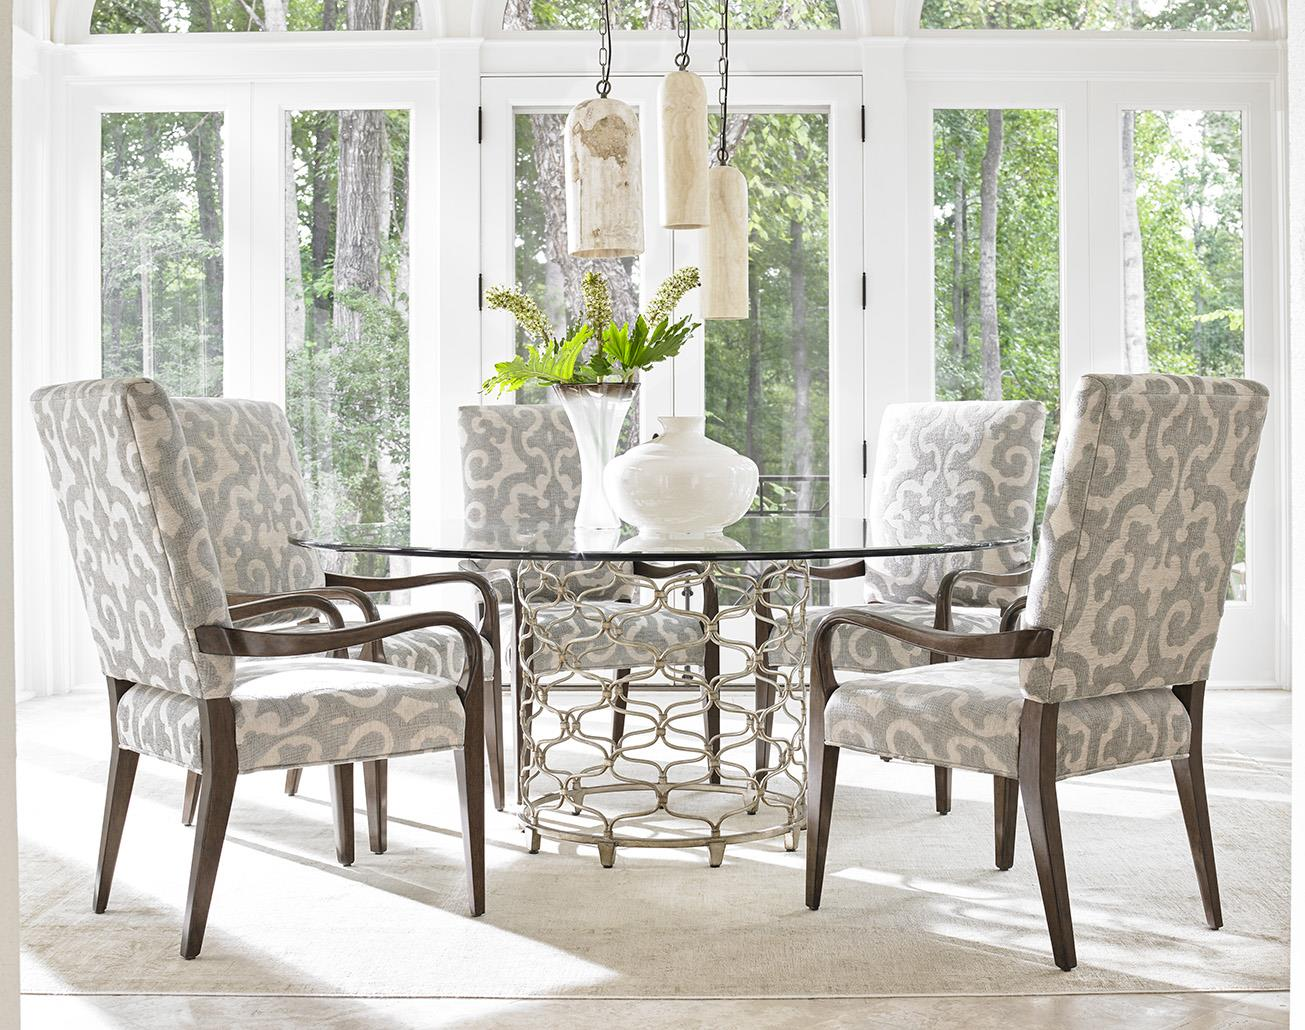 lexington dining chairs muji floor chair australia laurel canyon six piece set with bollinger table and sierra customizable